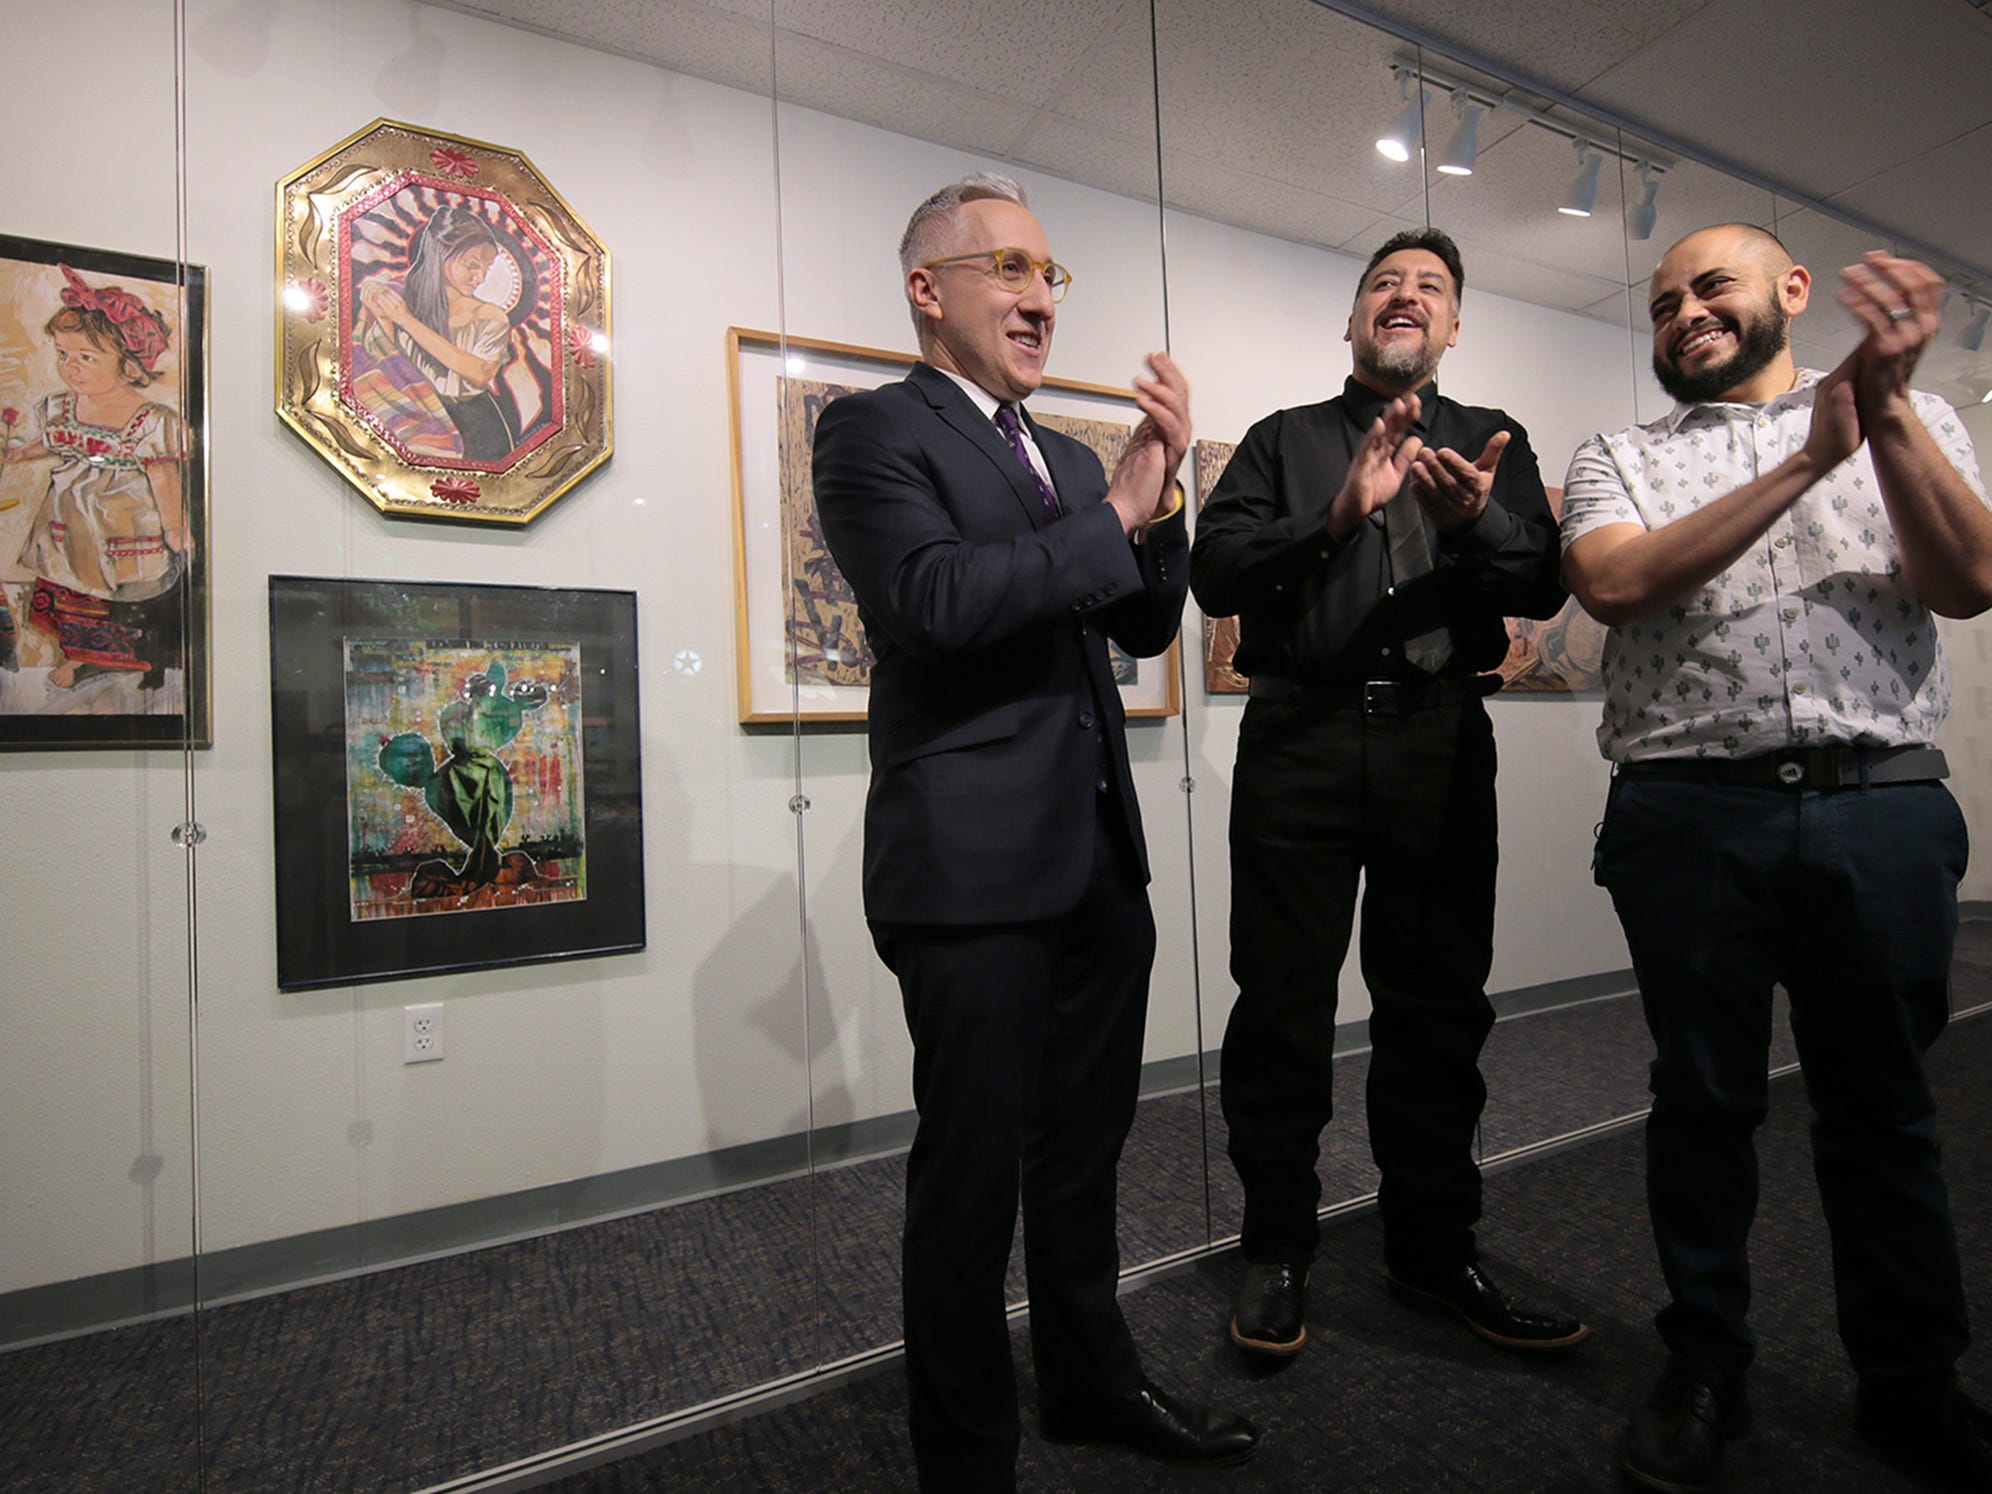 Ben Fyffe, assistant director of the El Paso Museums and Cultural Affairs Department introduces artists Adrian Lopez, right, and Ramiro Ordonez, center, Friday at the Art Windows of El Paso at the El Paso International Airport.